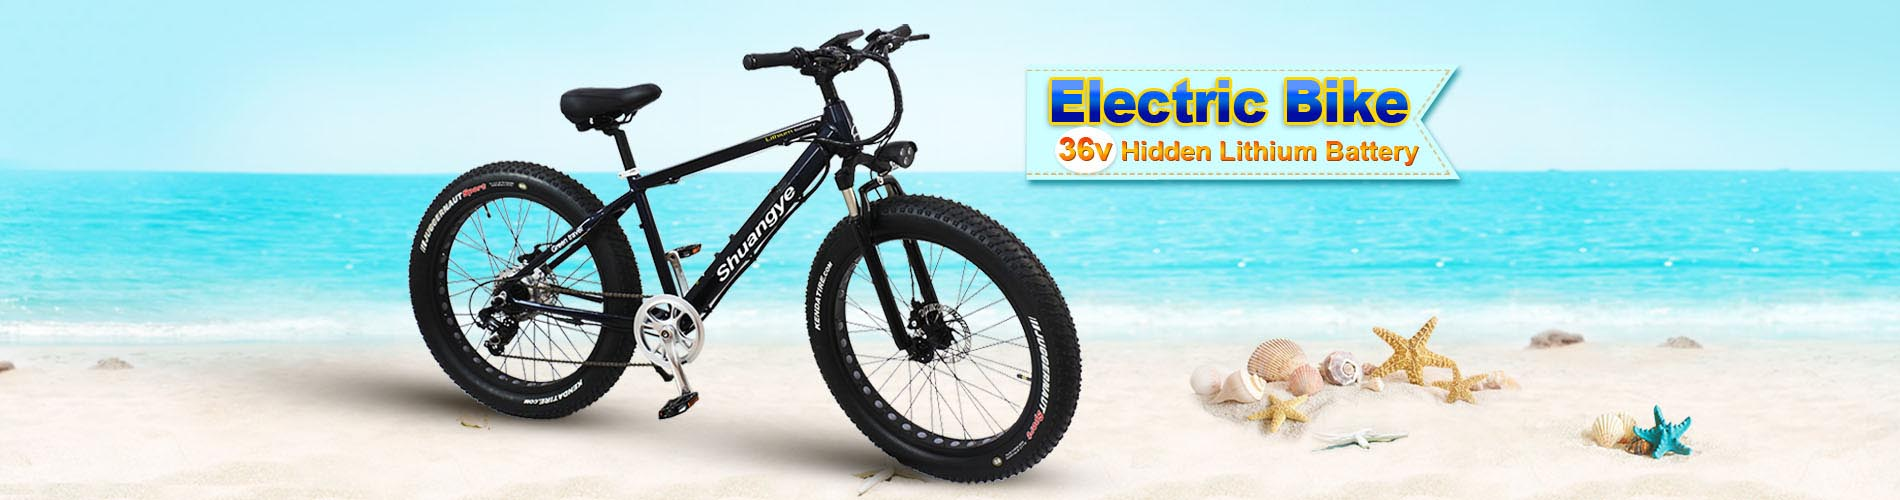 Urban electric bike specialist 24 inch